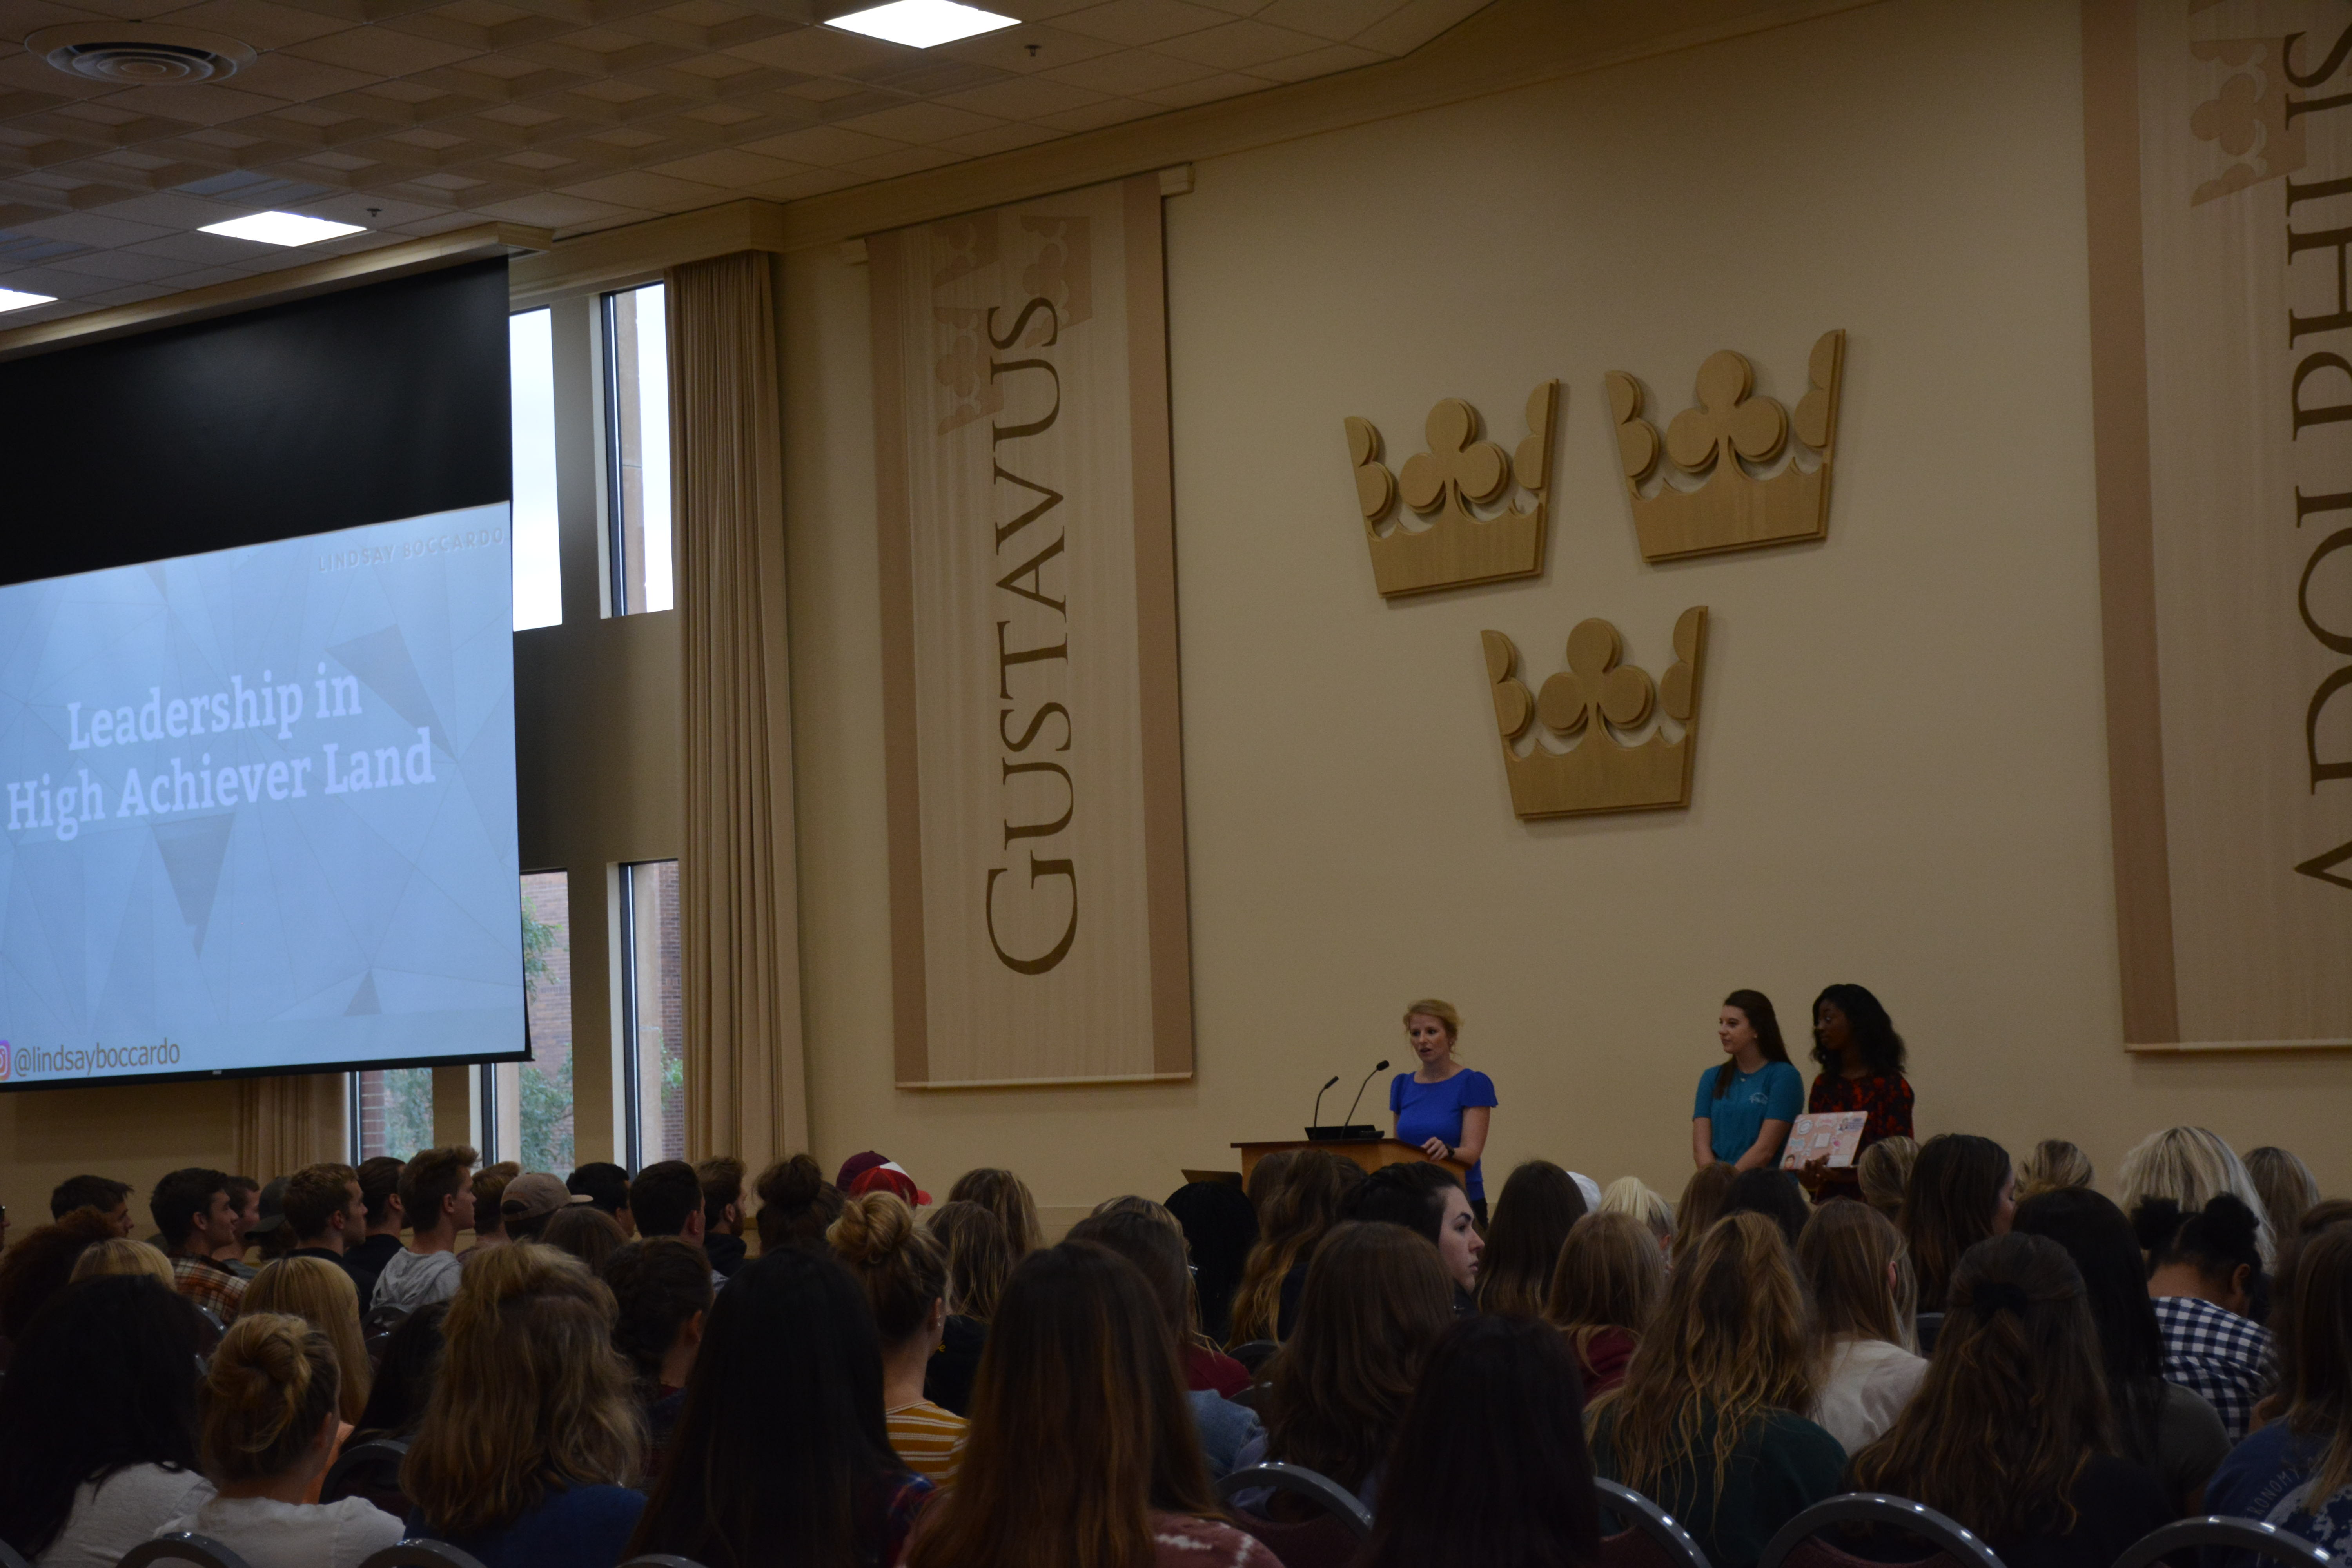 Greek life new member education night brought several to Alumni Hall.